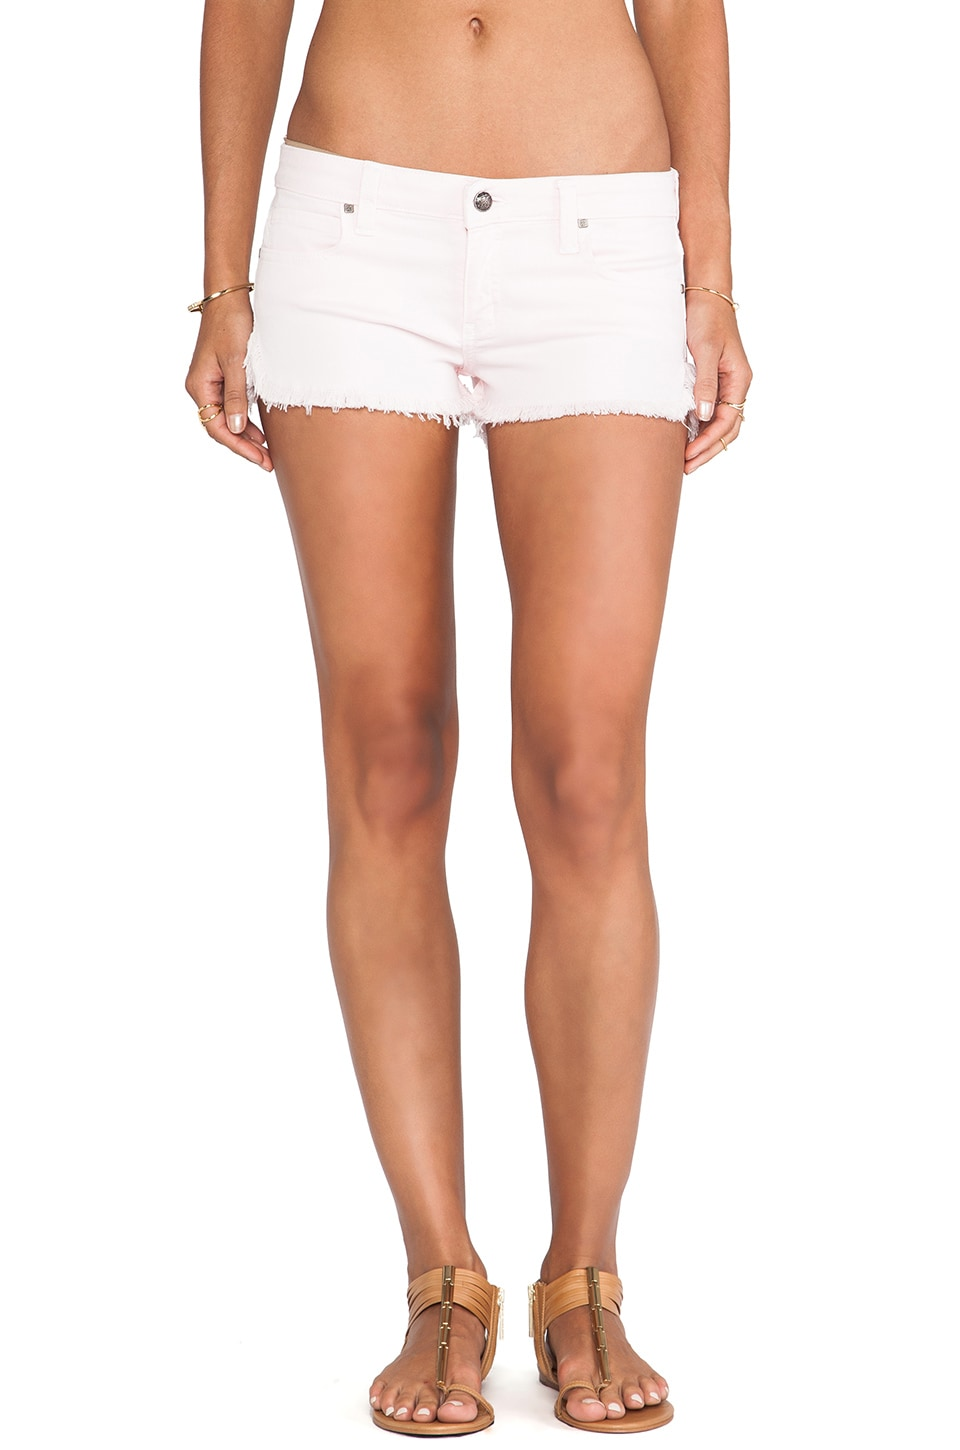 Frankie B. Jeans Jeanie Run Short in Lotus